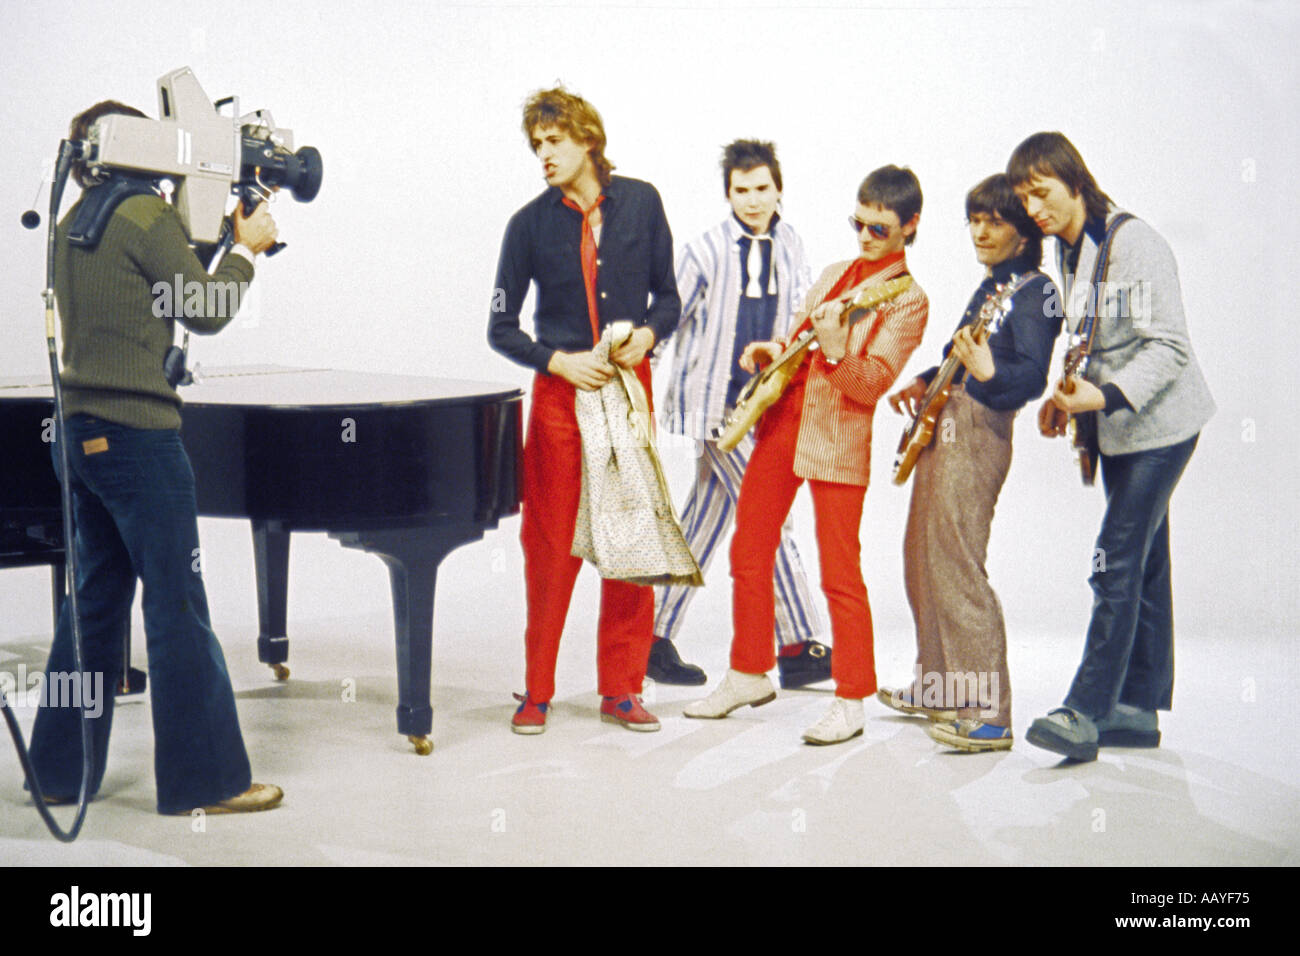 Bob Geldof singer with Boomtown Rats recording music video for Rat Trap in Molinare Studio London 19 October 1978 - Stock Image